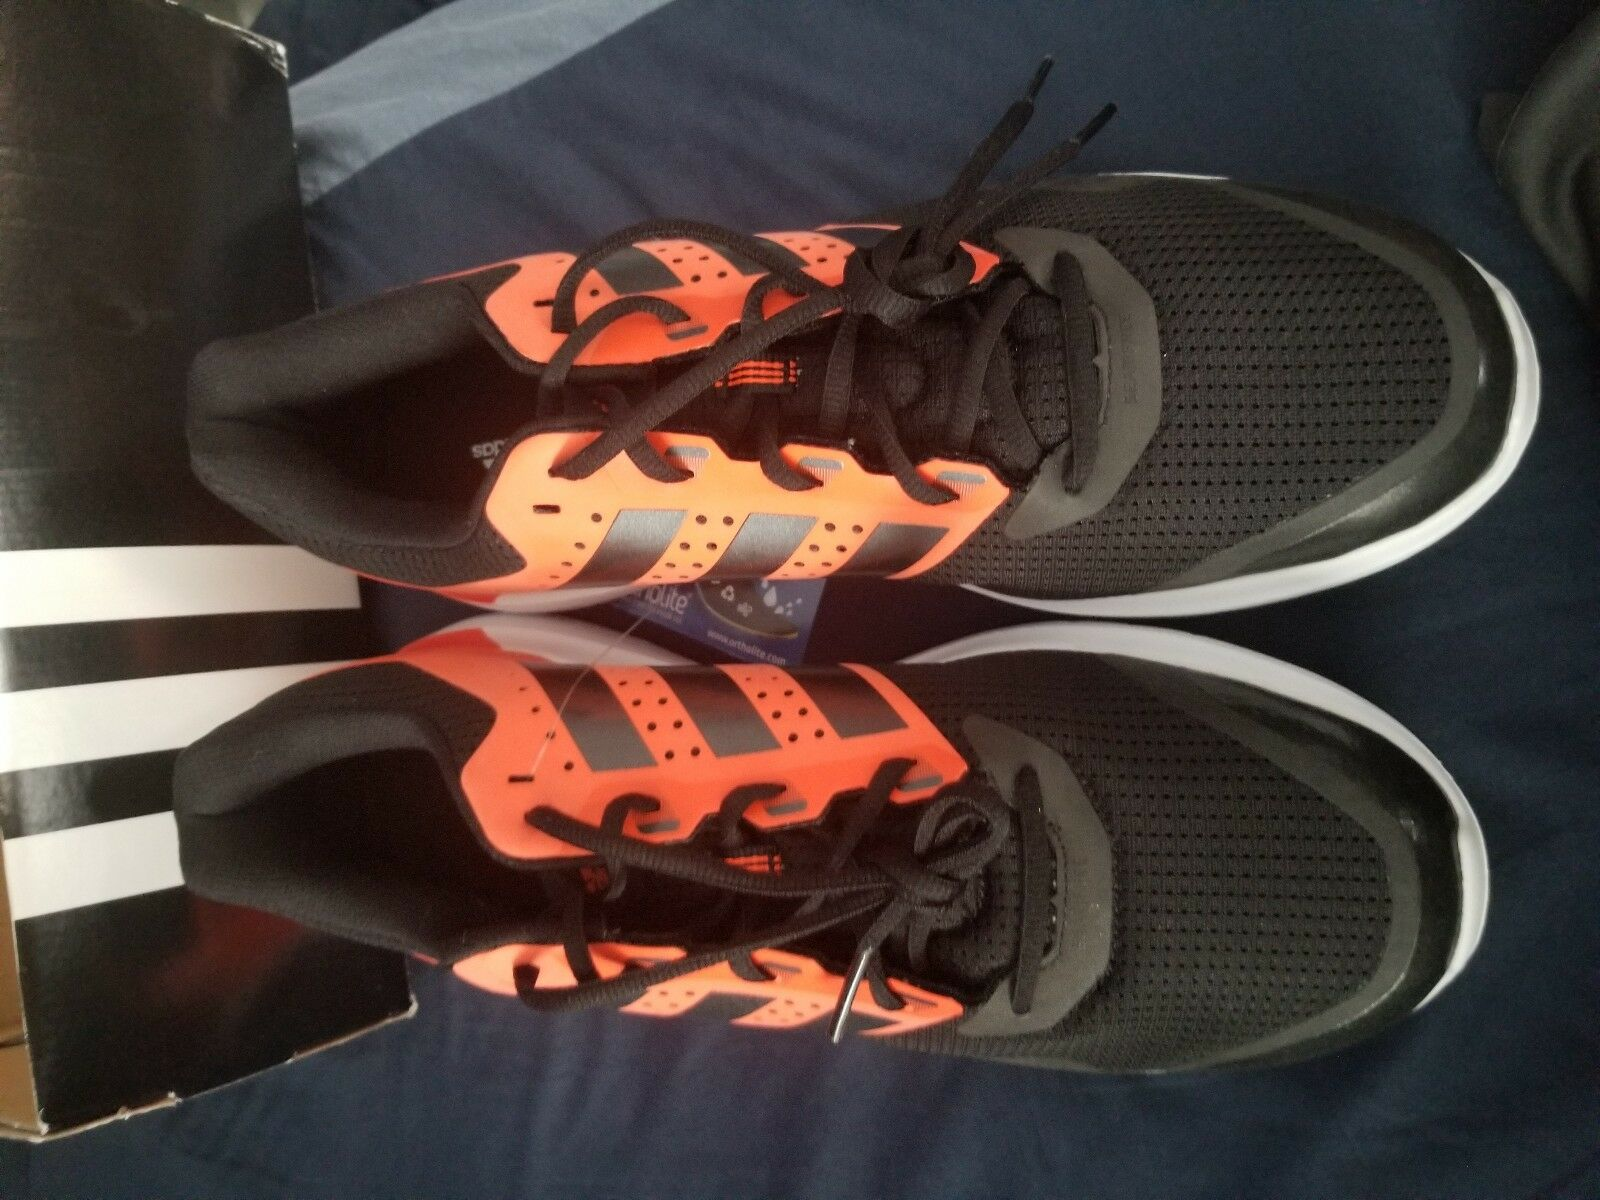 Brand New Adidas Duramo 7 M Running Shoes Performance Comfortable Wild casual shoes